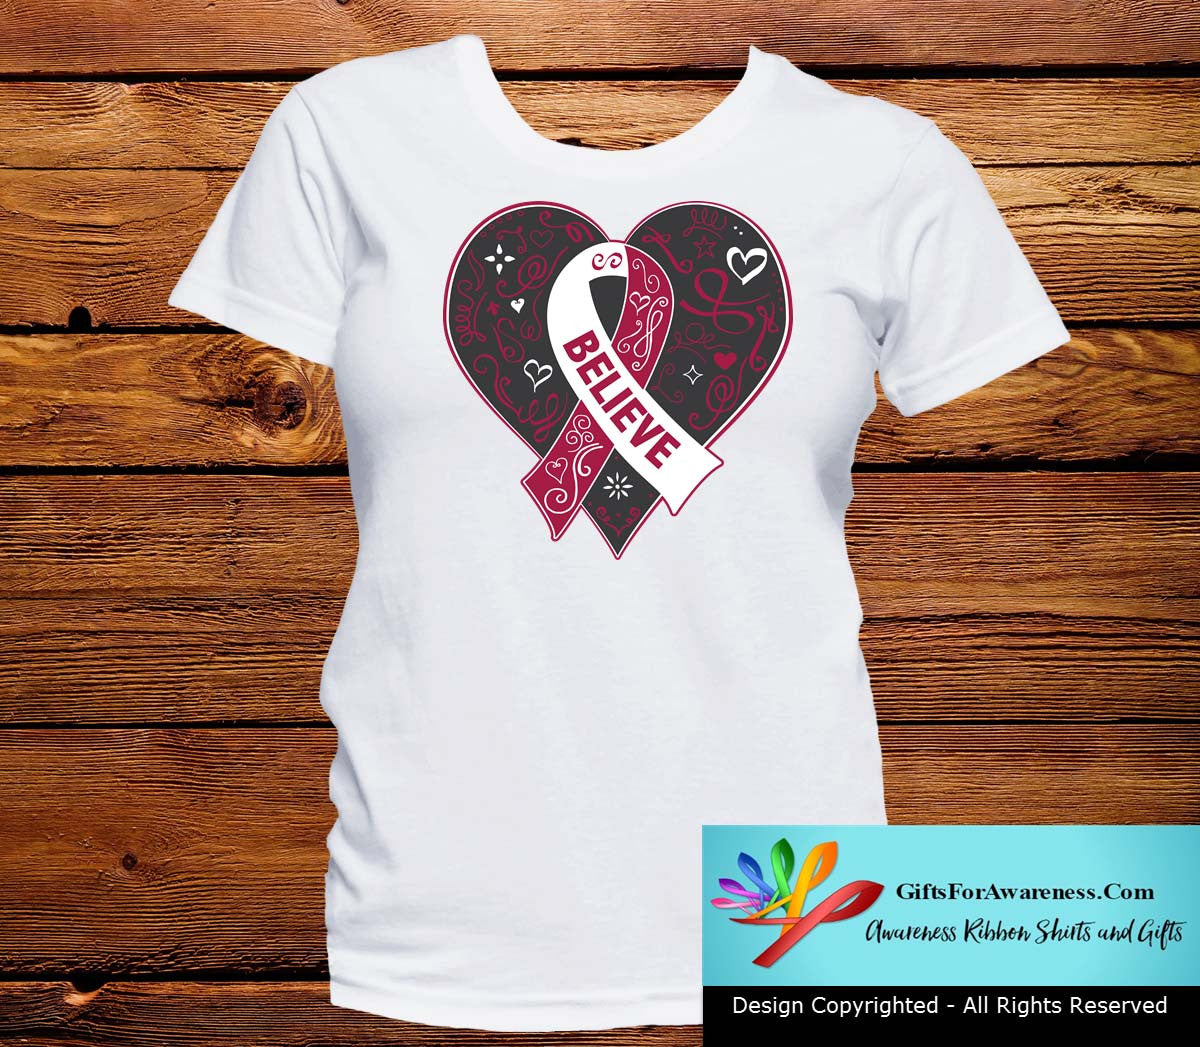 Head and Neck Cancer Believe Heart Ribbon Shirts - GiftsForAwareness